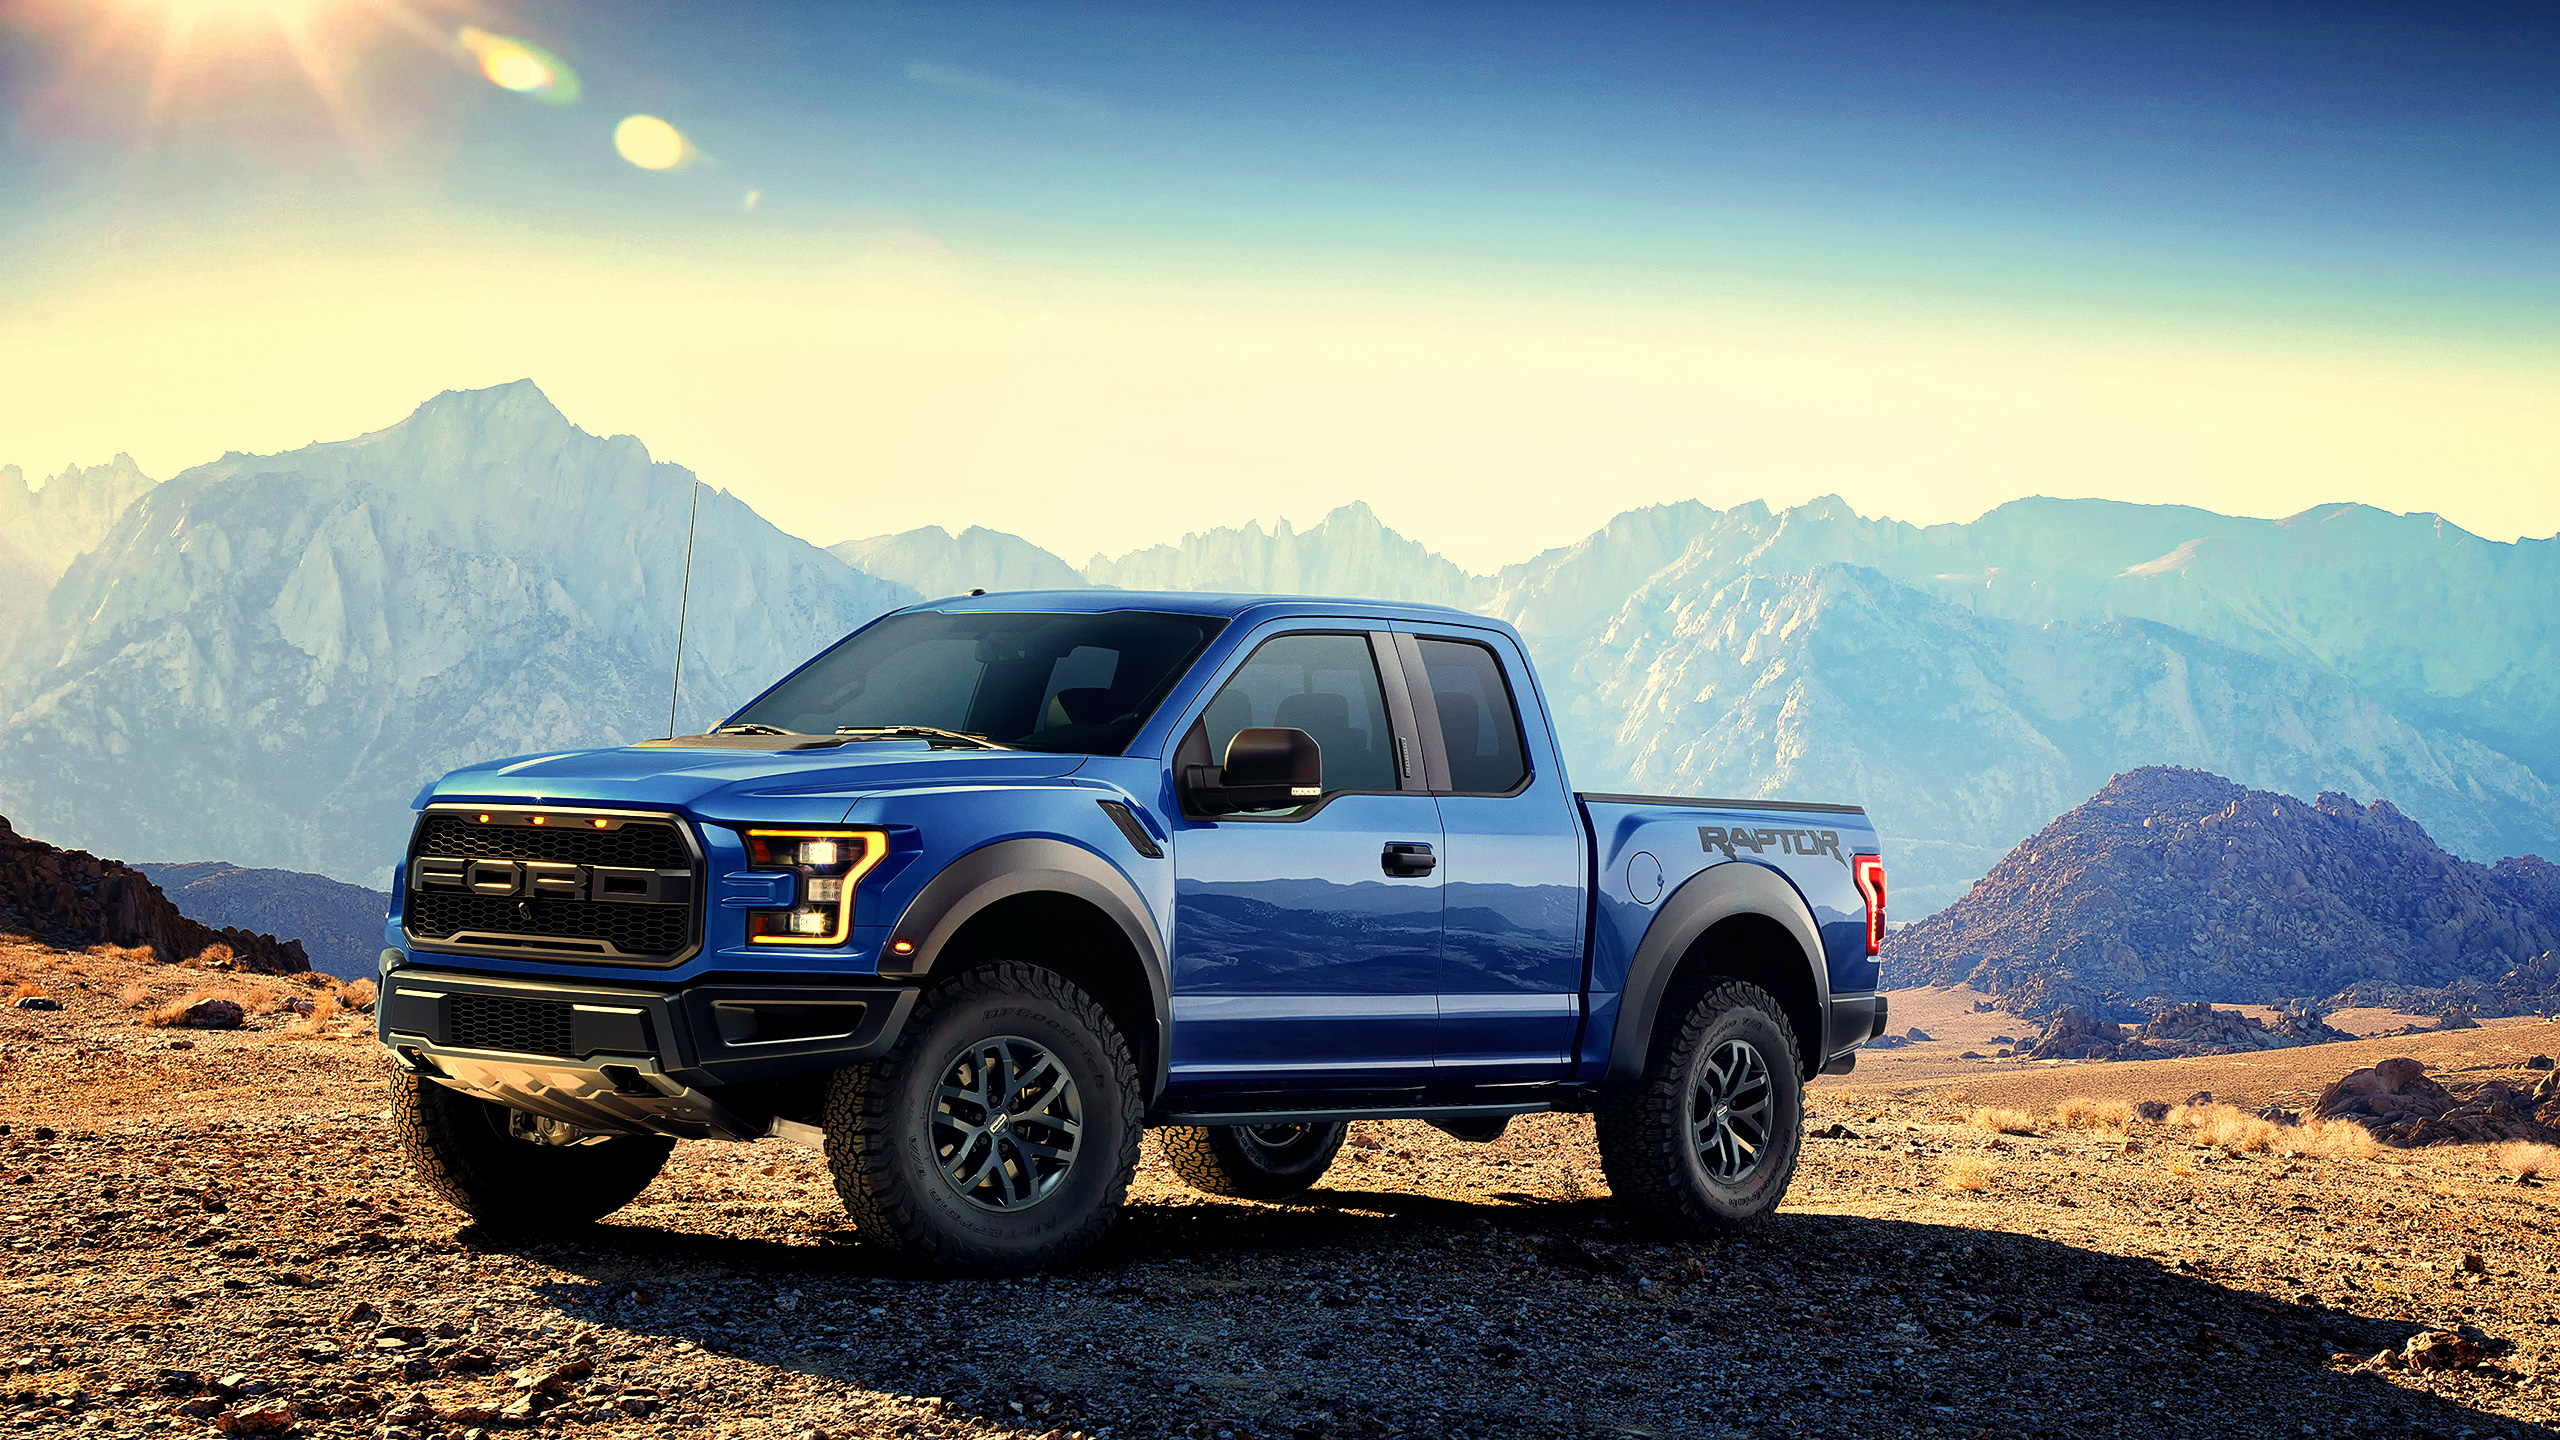 2017 ford f 150 svt raptor wallpaper hd car wallpapers id 7111. Black Bedroom Furniture Sets. Home Design Ideas